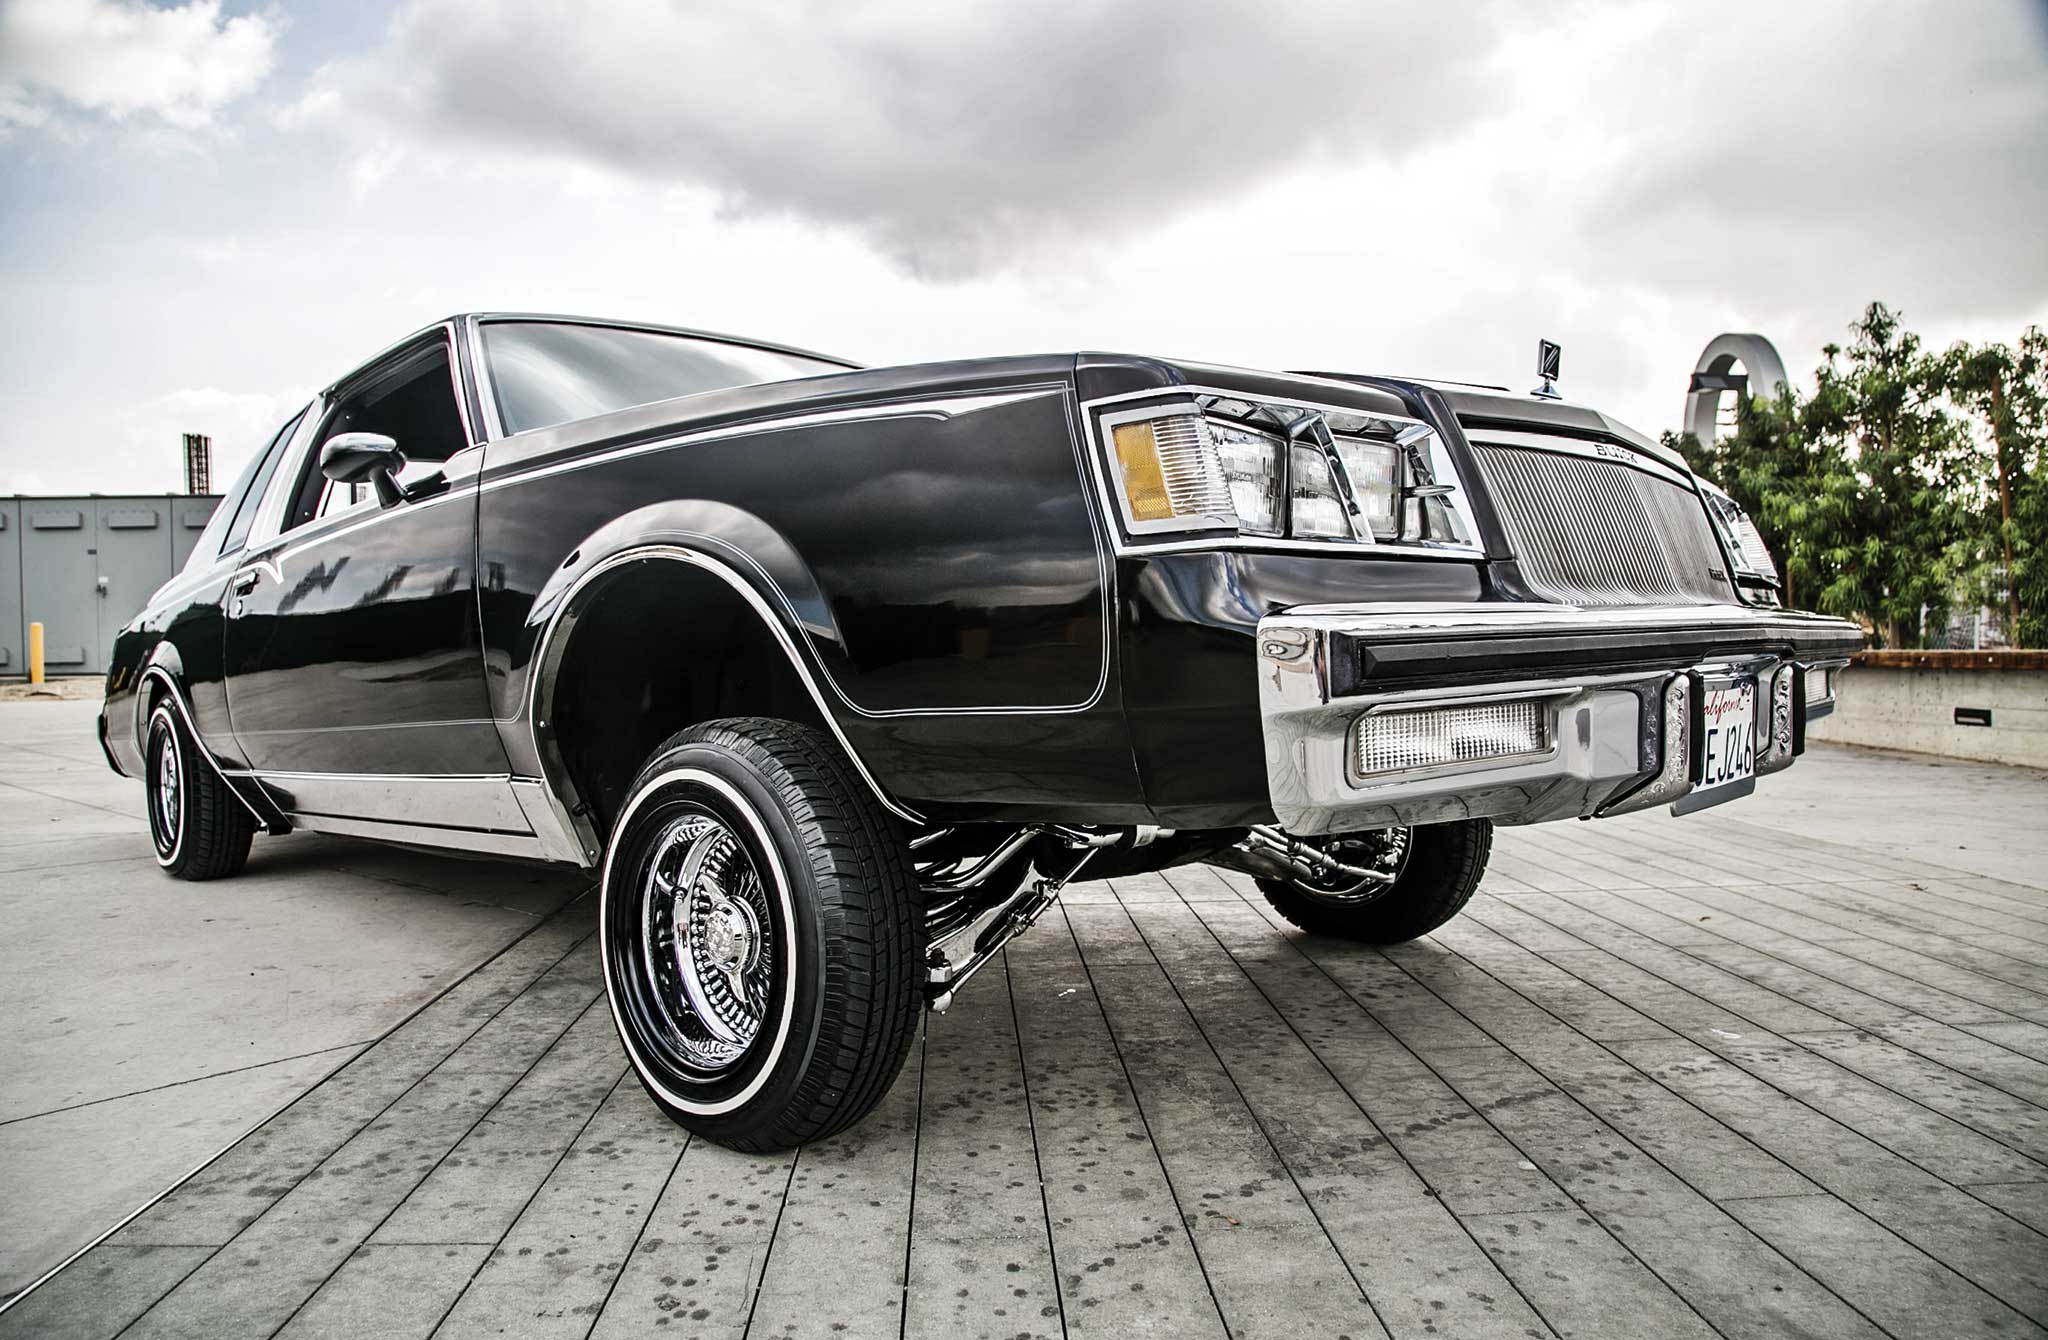 1984 buick regal it 39 s all relative lowrider. Black Bedroom Furniture Sets. Home Design Ideas